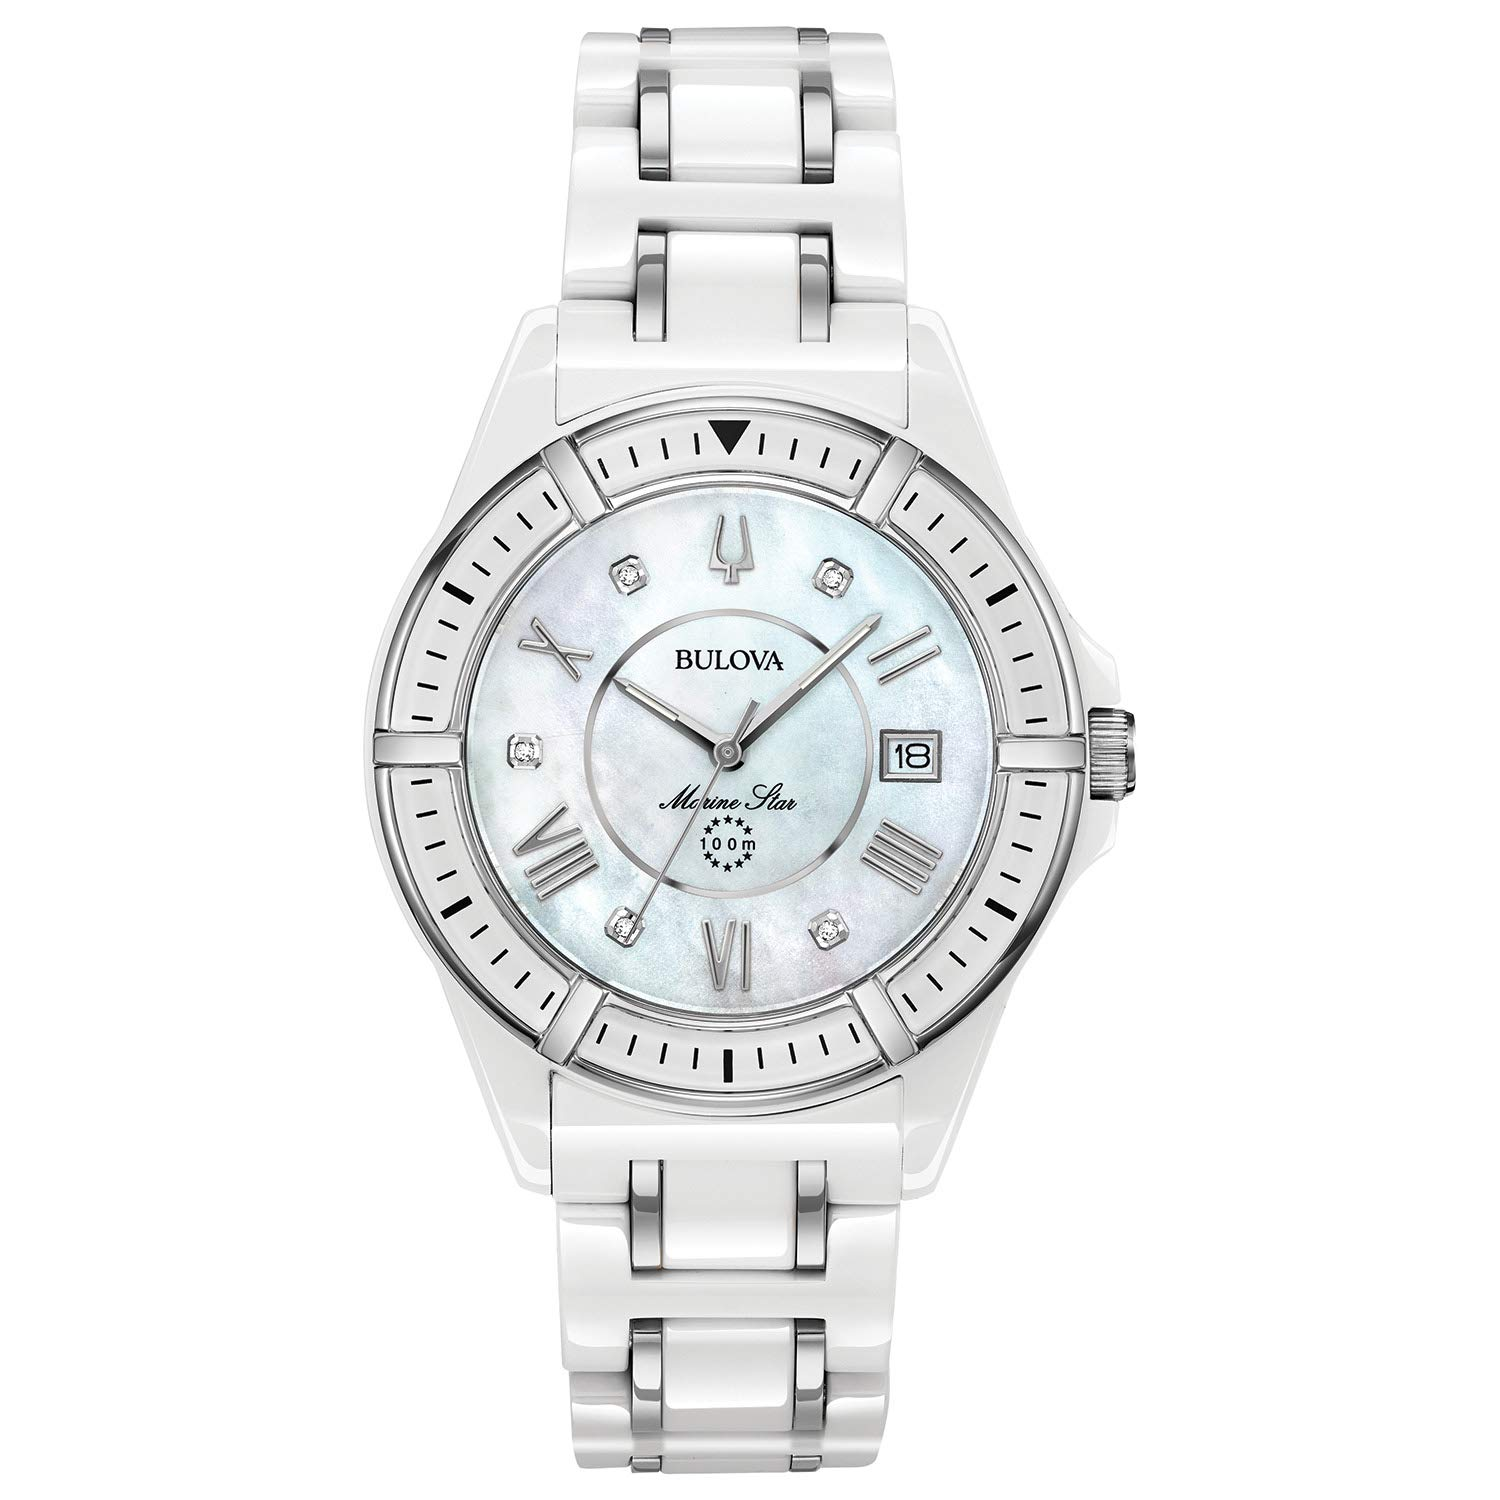 Bulova Women s Marine Star Quartz Watch with Ceramic Strap, White, 18 Model 98P172